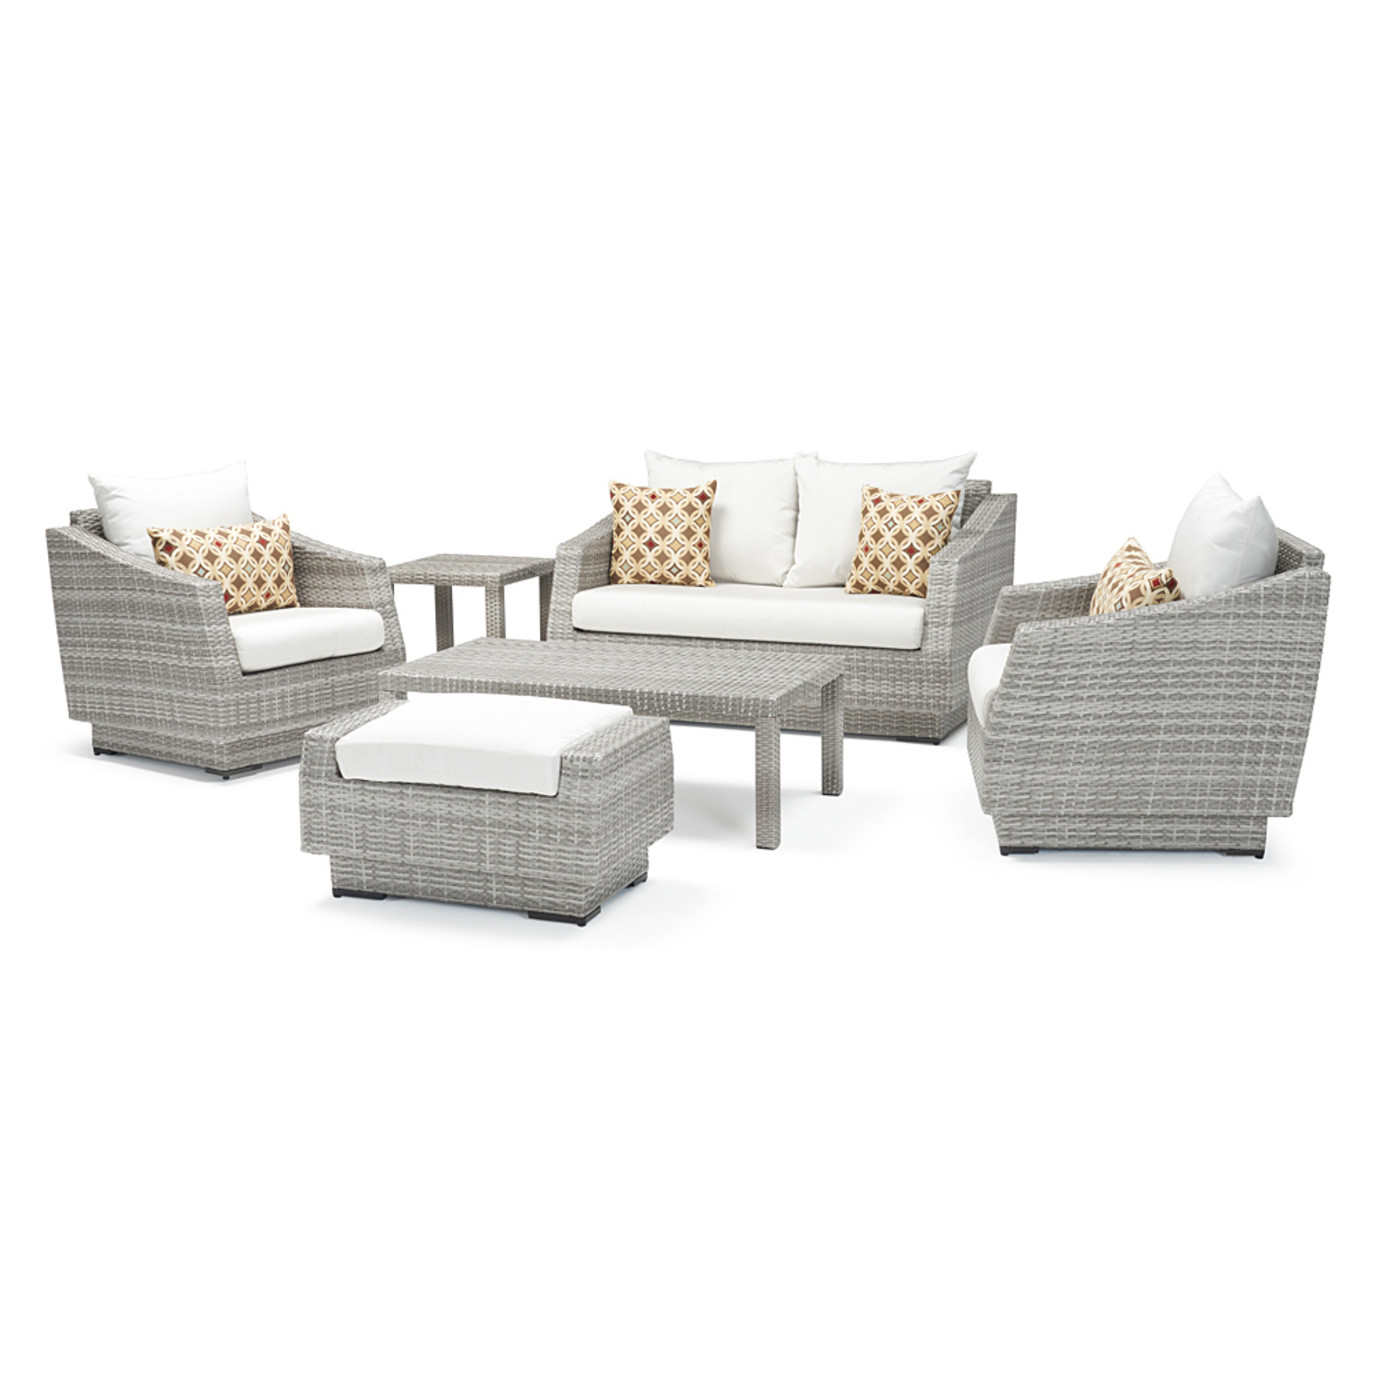 Cannes™ 6pc Love and Club Seating Set - Moroccan Cream